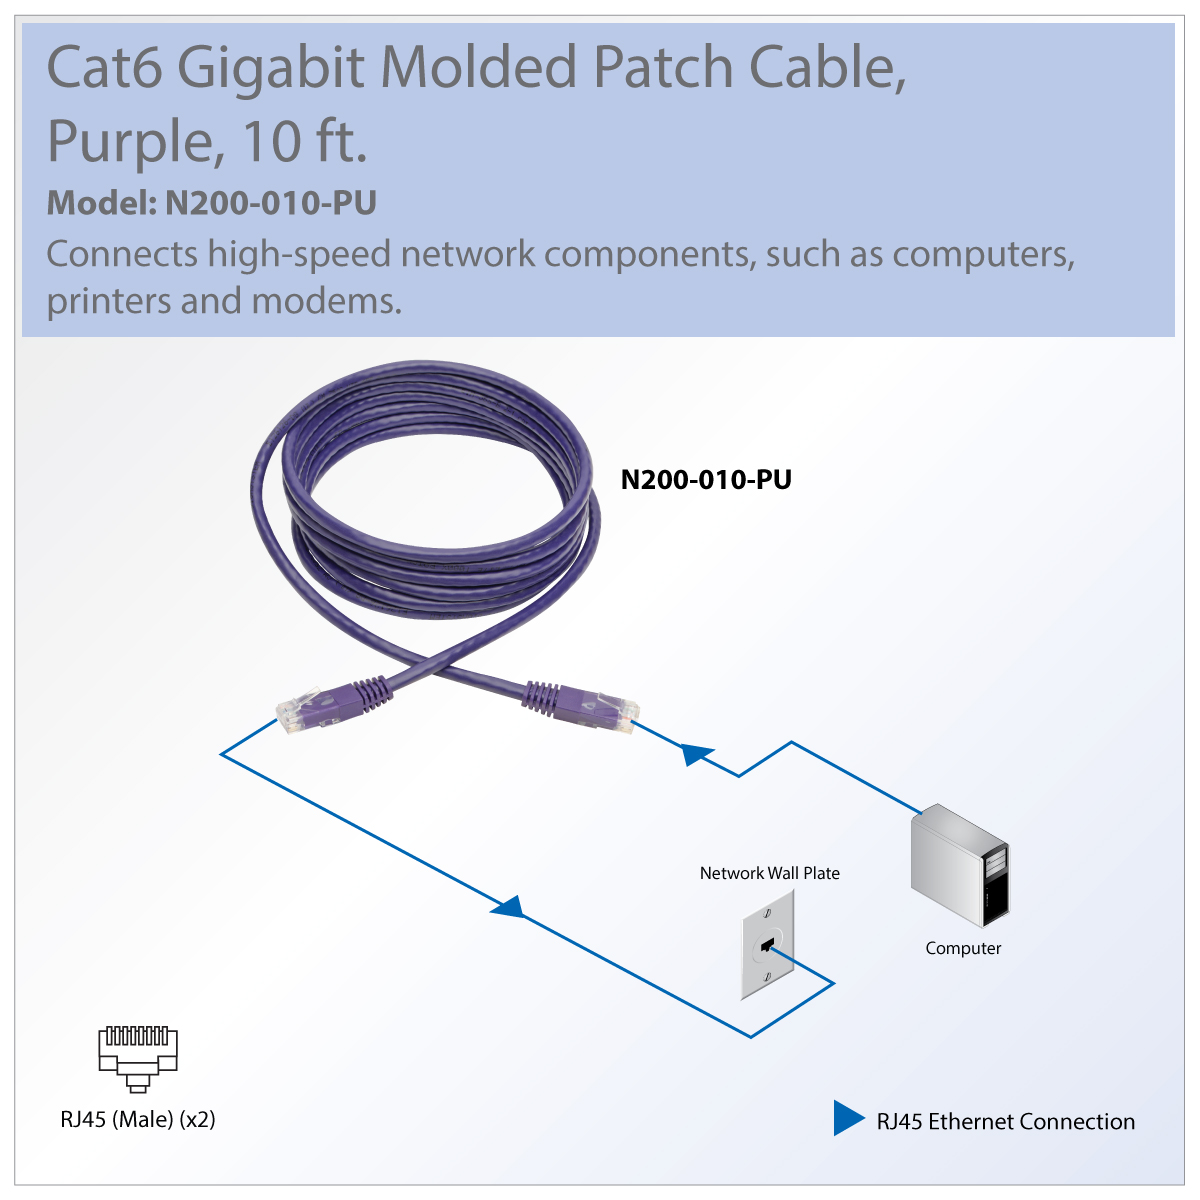 Provantage Tripp Lite N200 010 Pu Cat6 Cat5e Gigabit Rj45 To Cable 550mhz Standards For Switch Router Modem Patch Great Connecting Components In Bandwidth Heavy Home Office Networks